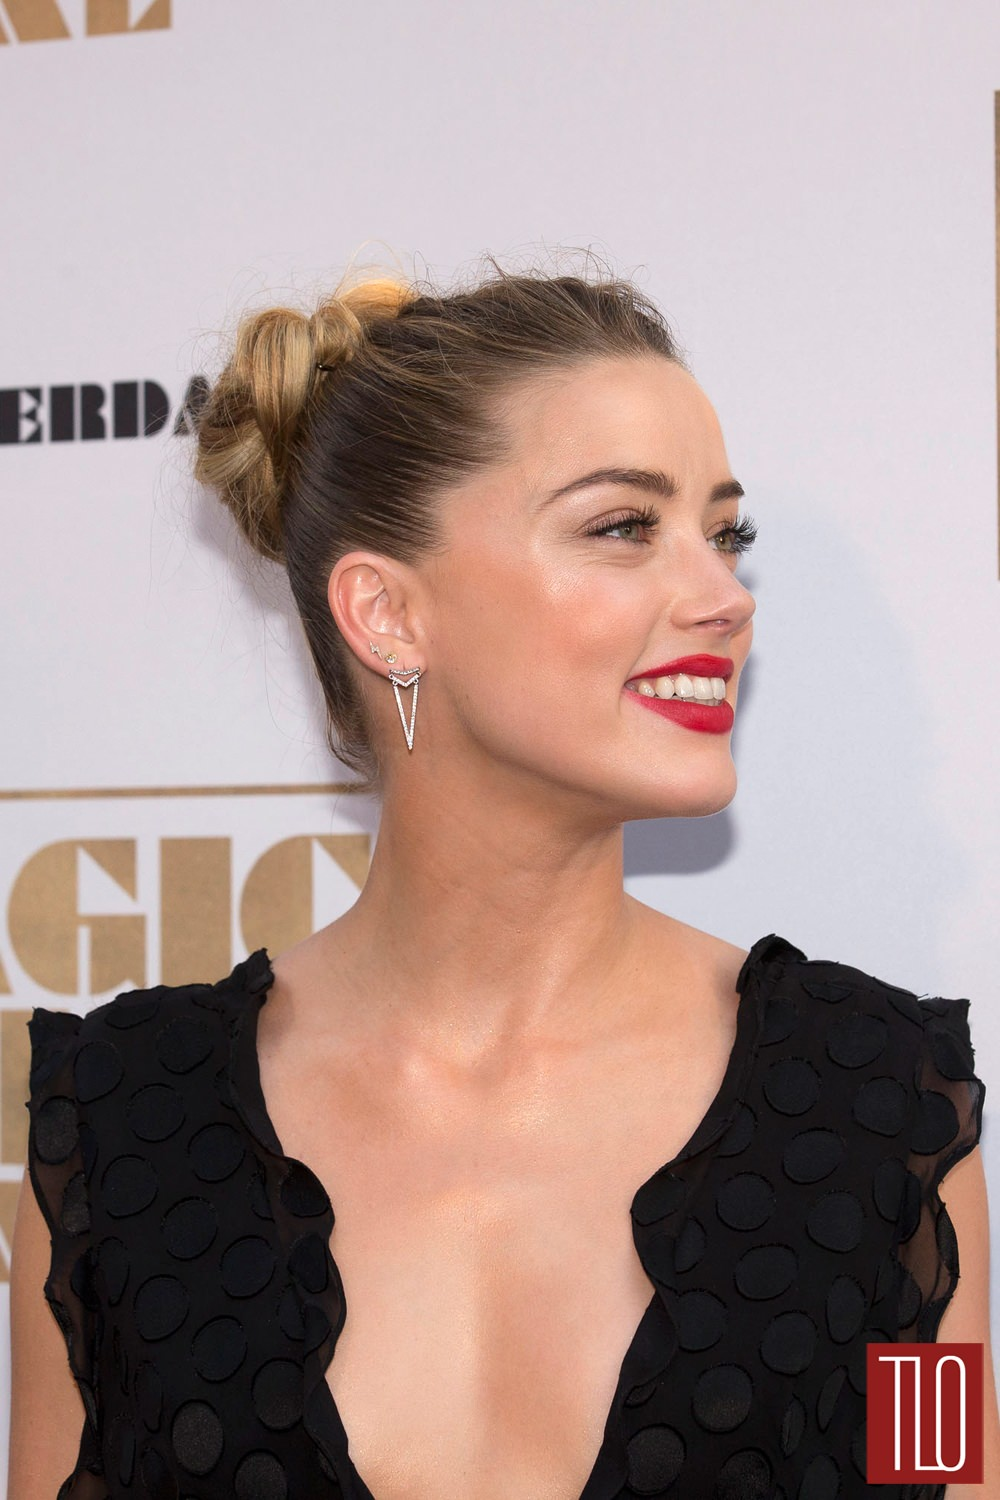 Amber-Heard-Magic-Mike-XXL-Amsterdam-Movie-Premiere-Red-Carpet-Cushnie-Ochs-Tom-LOrenzo-Site-TLO-1